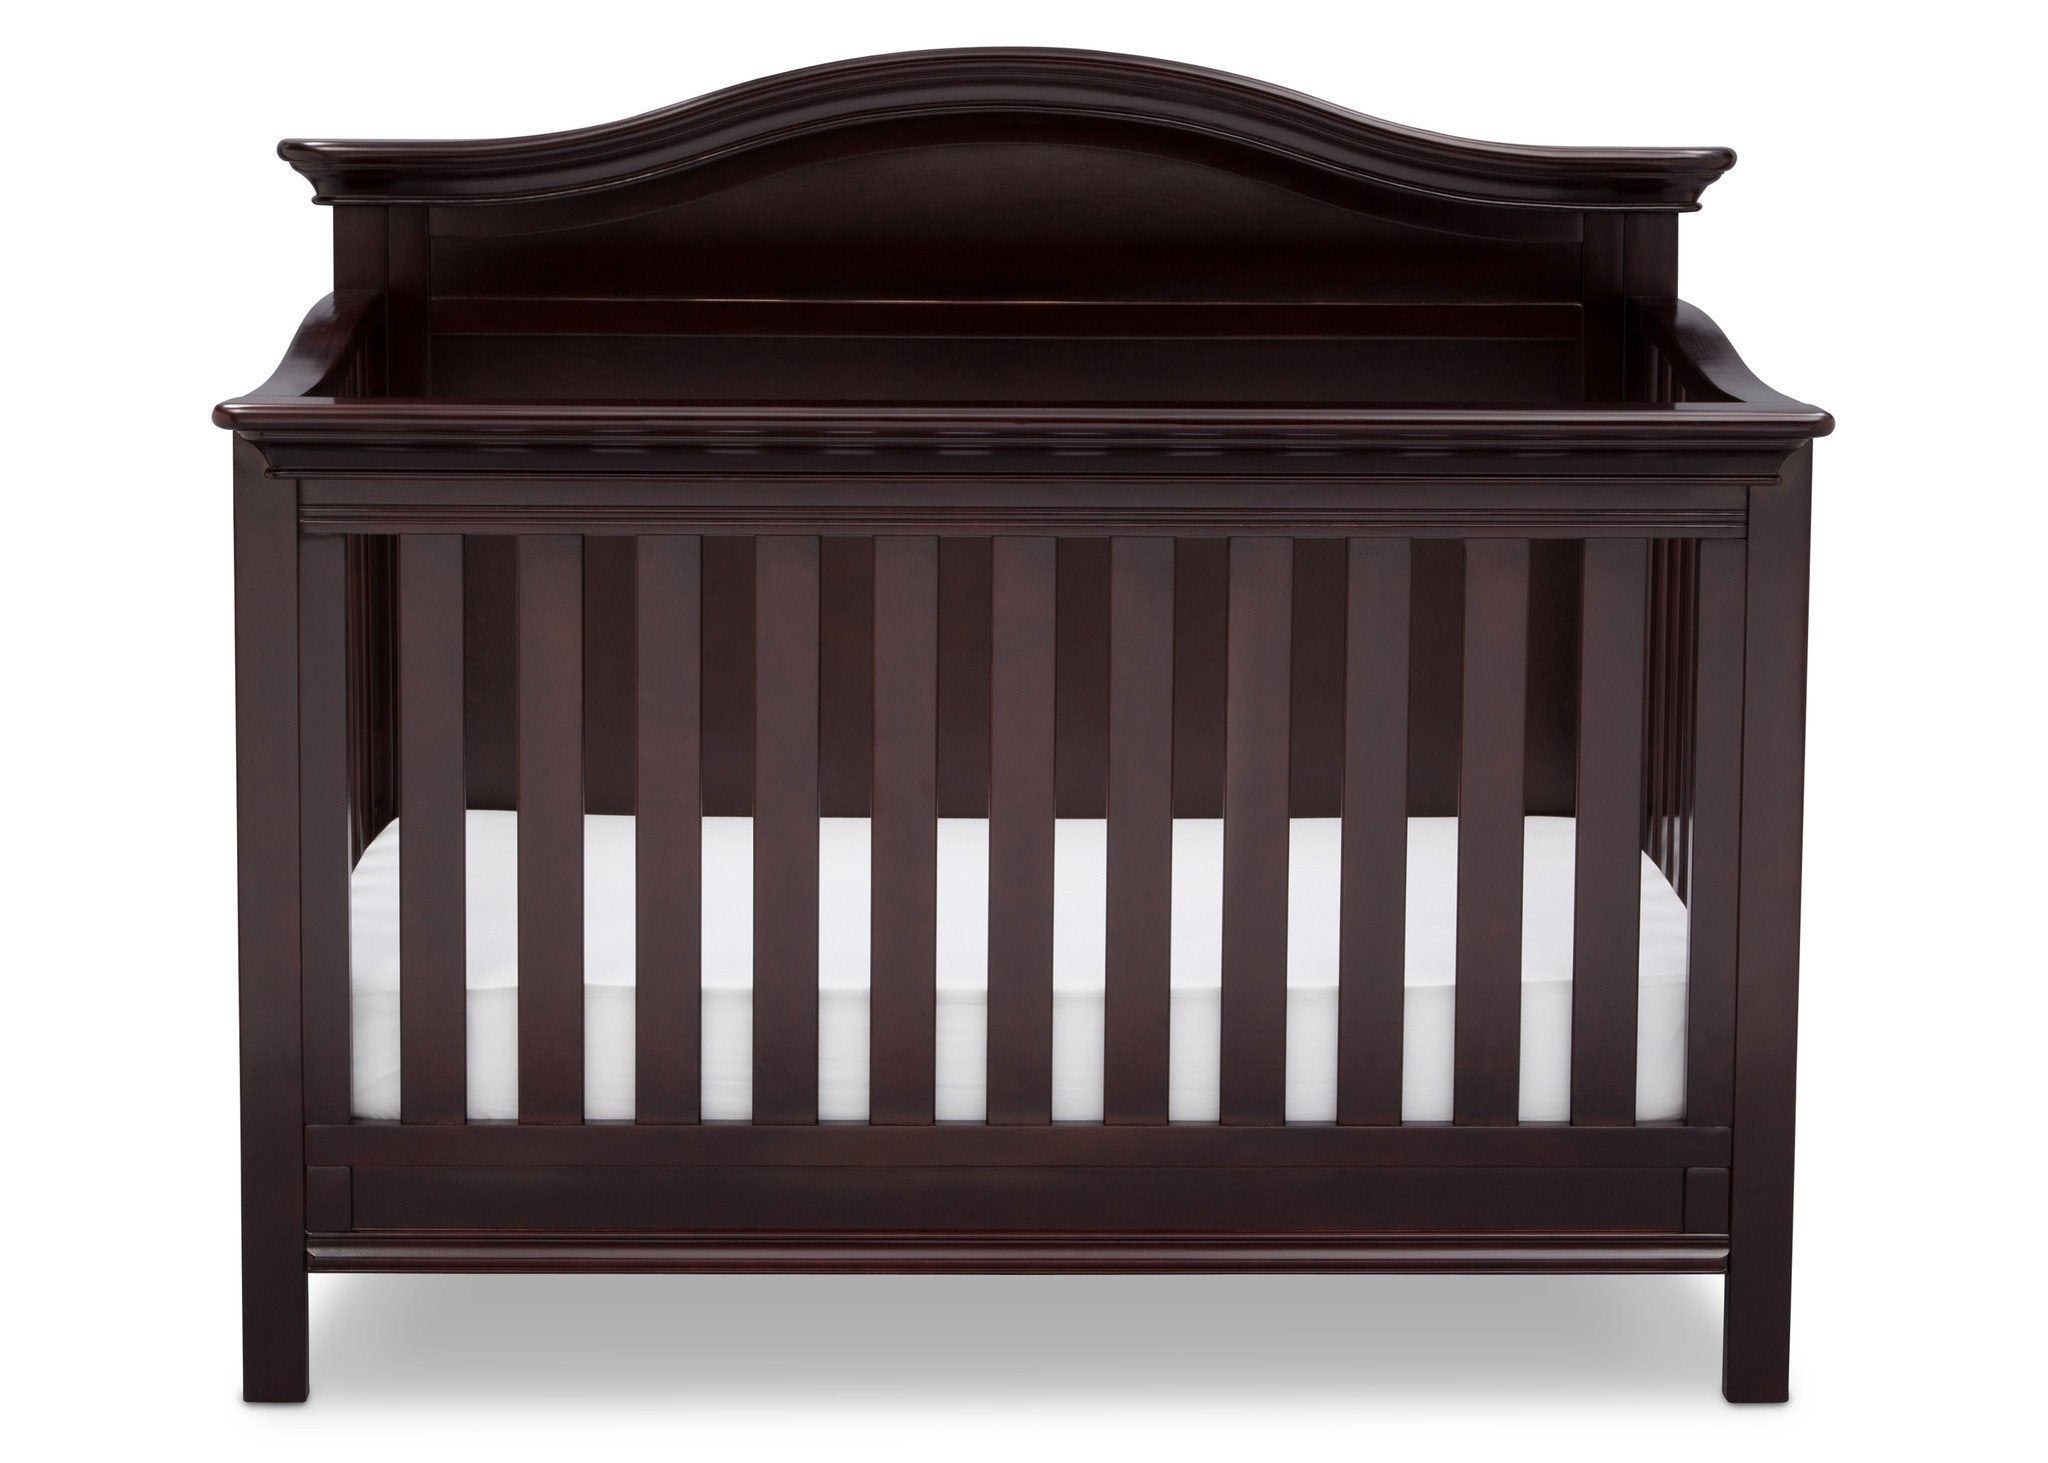 Serta Dark Chocolate (207) Bethpage 4-in-1 Crib, Front View with Crib Conversion c3c